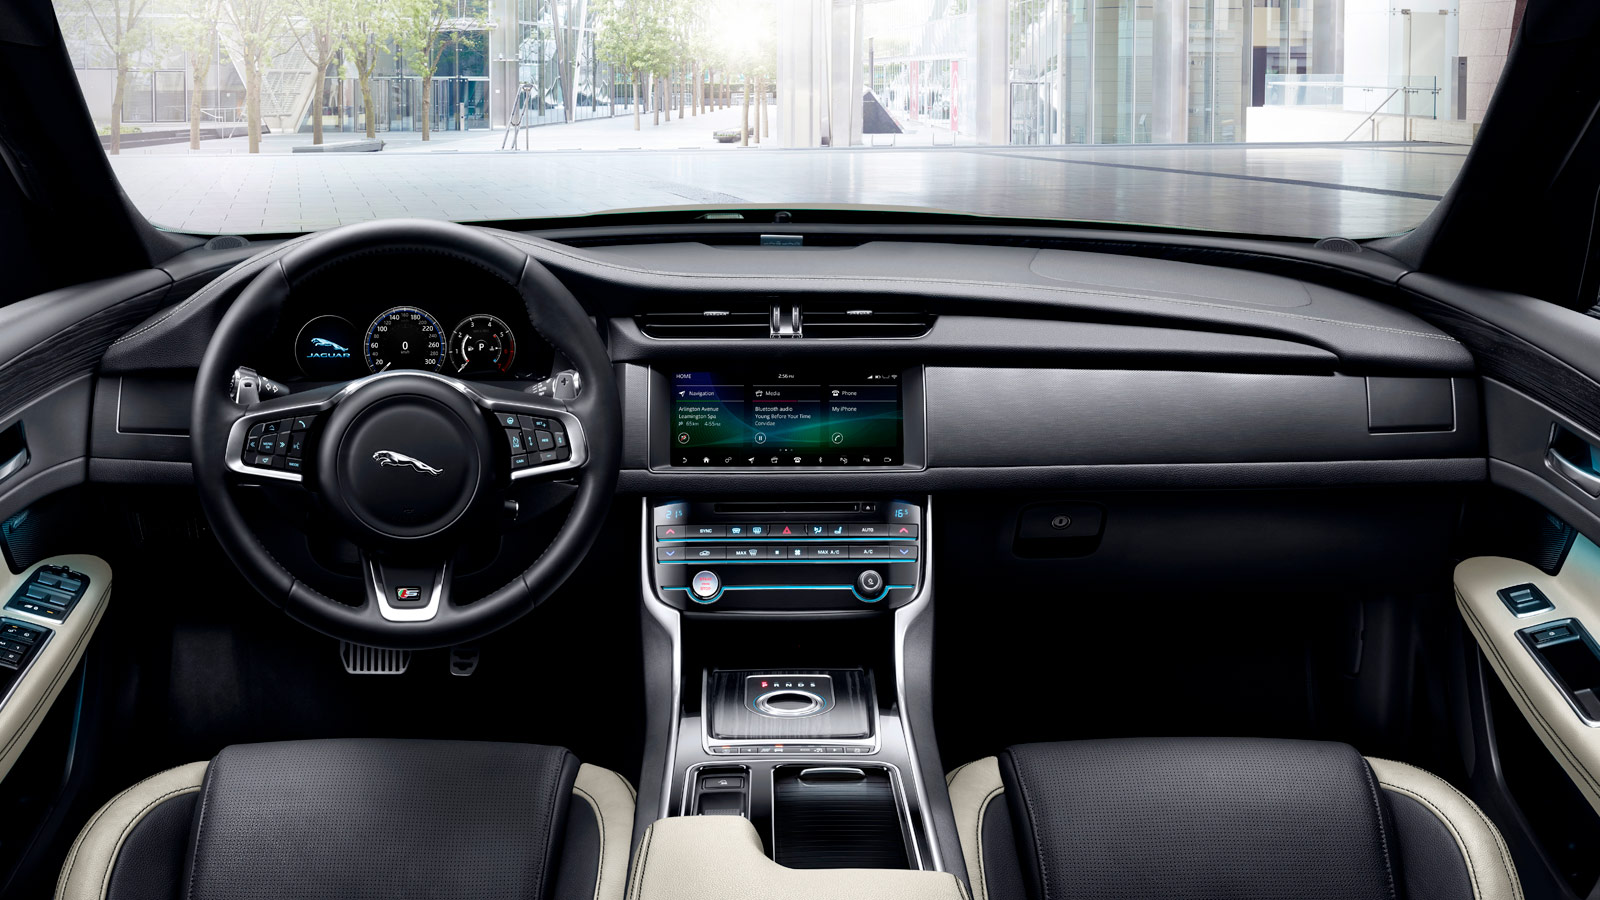 Jaguar XF Interior Design